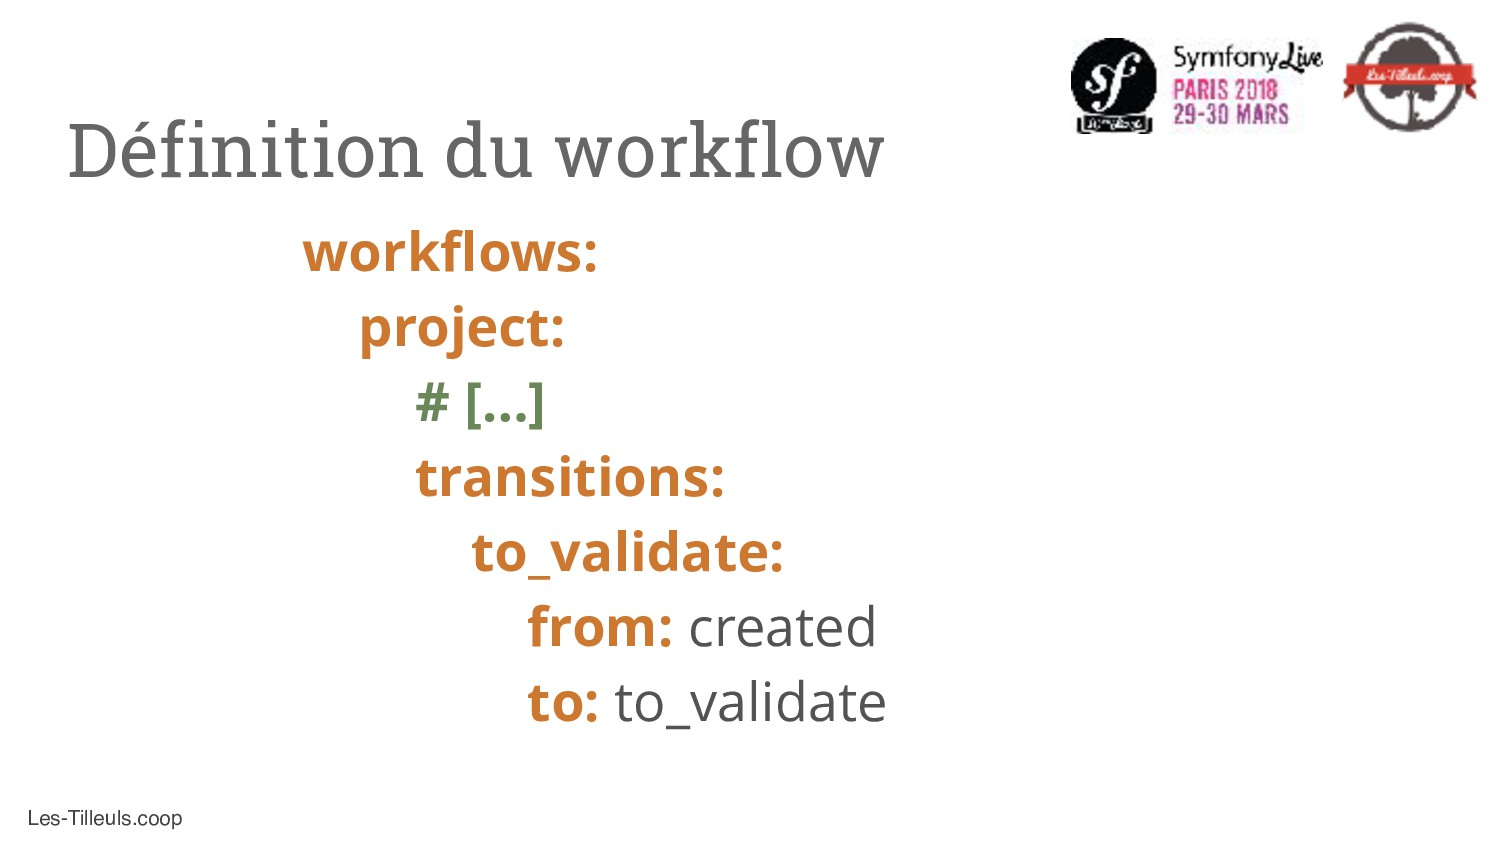 Les-Tilleuls.coop workflows: project: # […] tra...